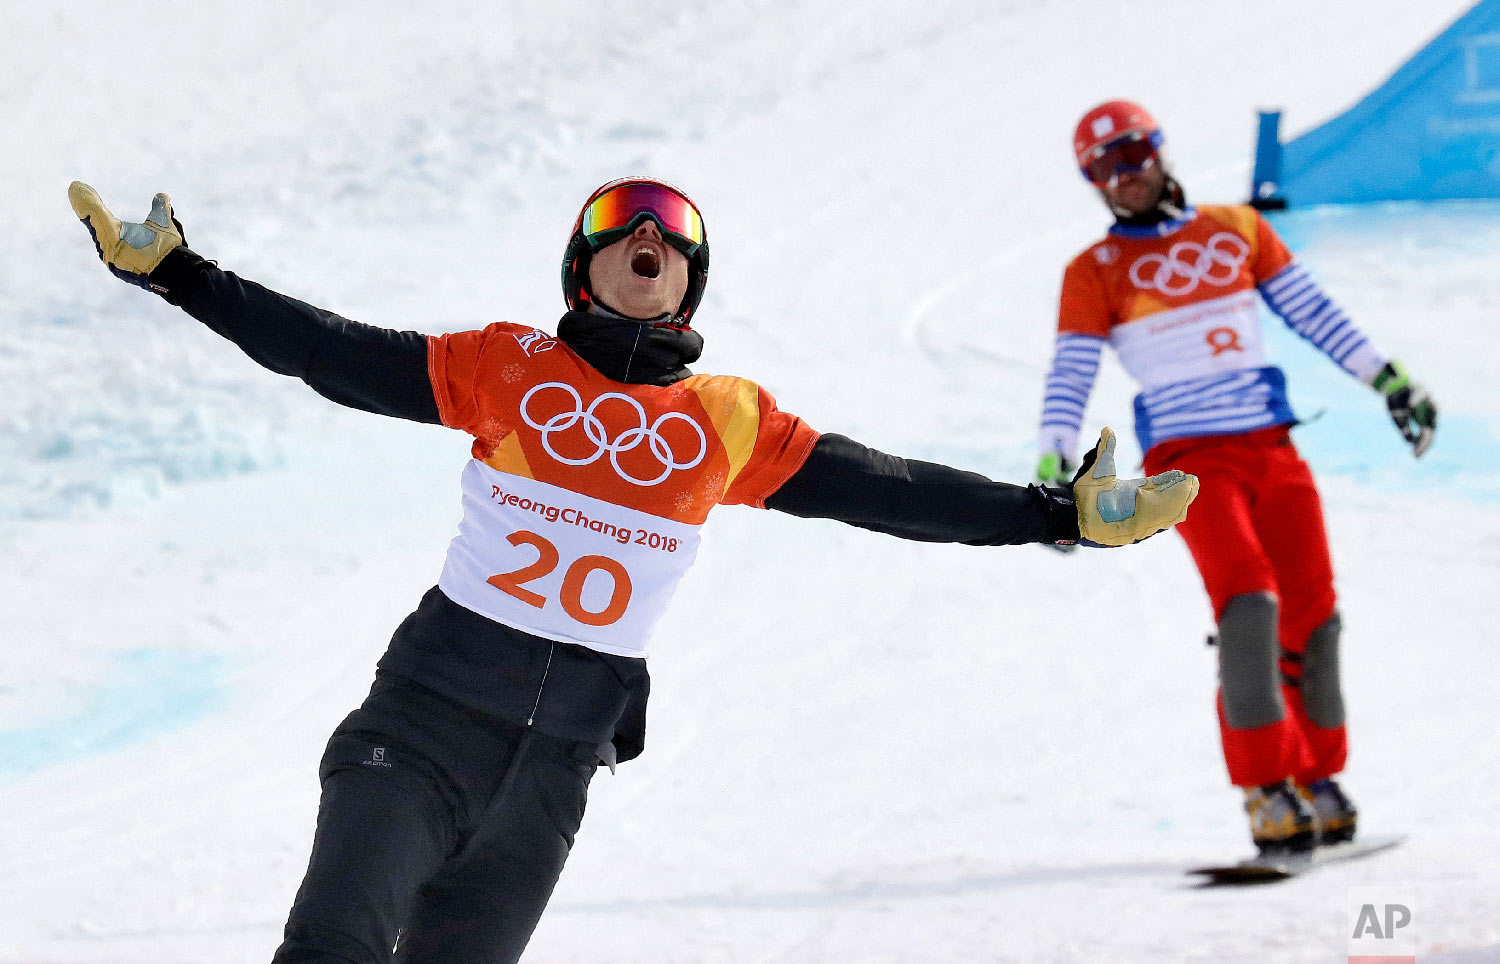 Bronze medal winner Zan Kosir, of Slovenia, celebrates after the small men's parallel giant slalom final at Phoenix Snow Park at the 2018 Winter Olympics in Pyeongchang, South Korea, Saturday, Feb. 24, 2018. (AP Photo/Lee Jin-man)